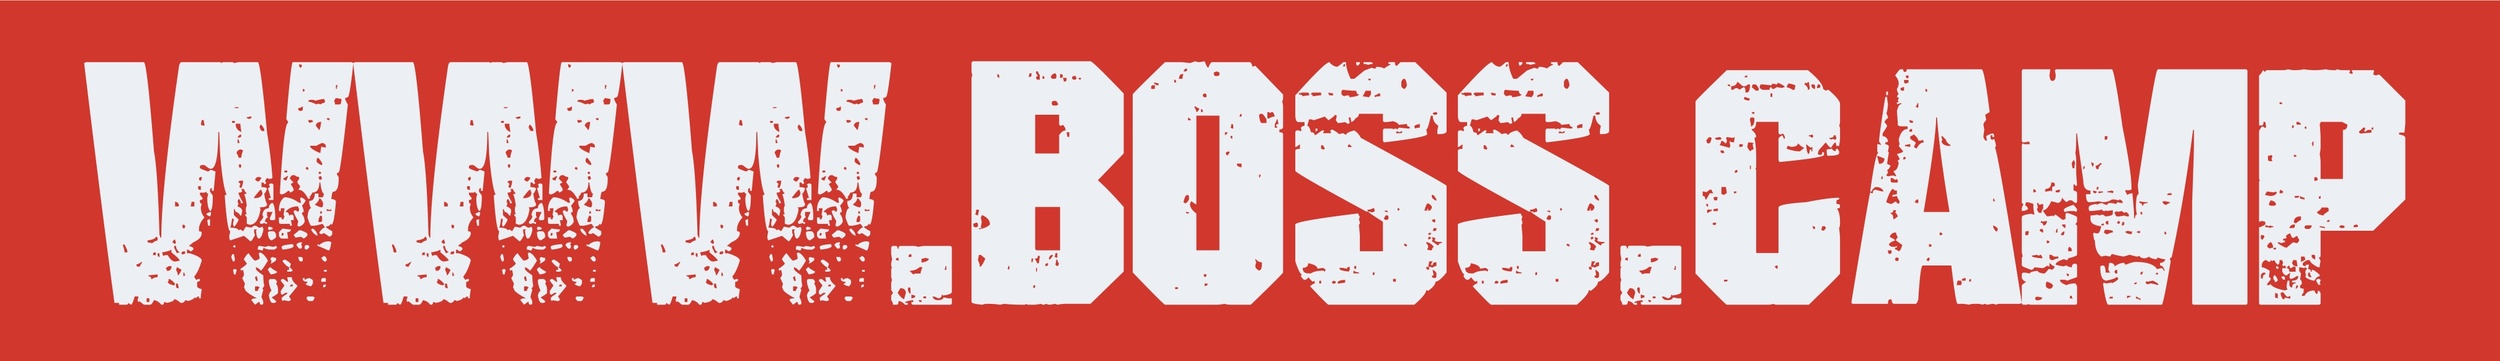 Find out how to get better employee performance and make work work with www.boss.camp Jpeg